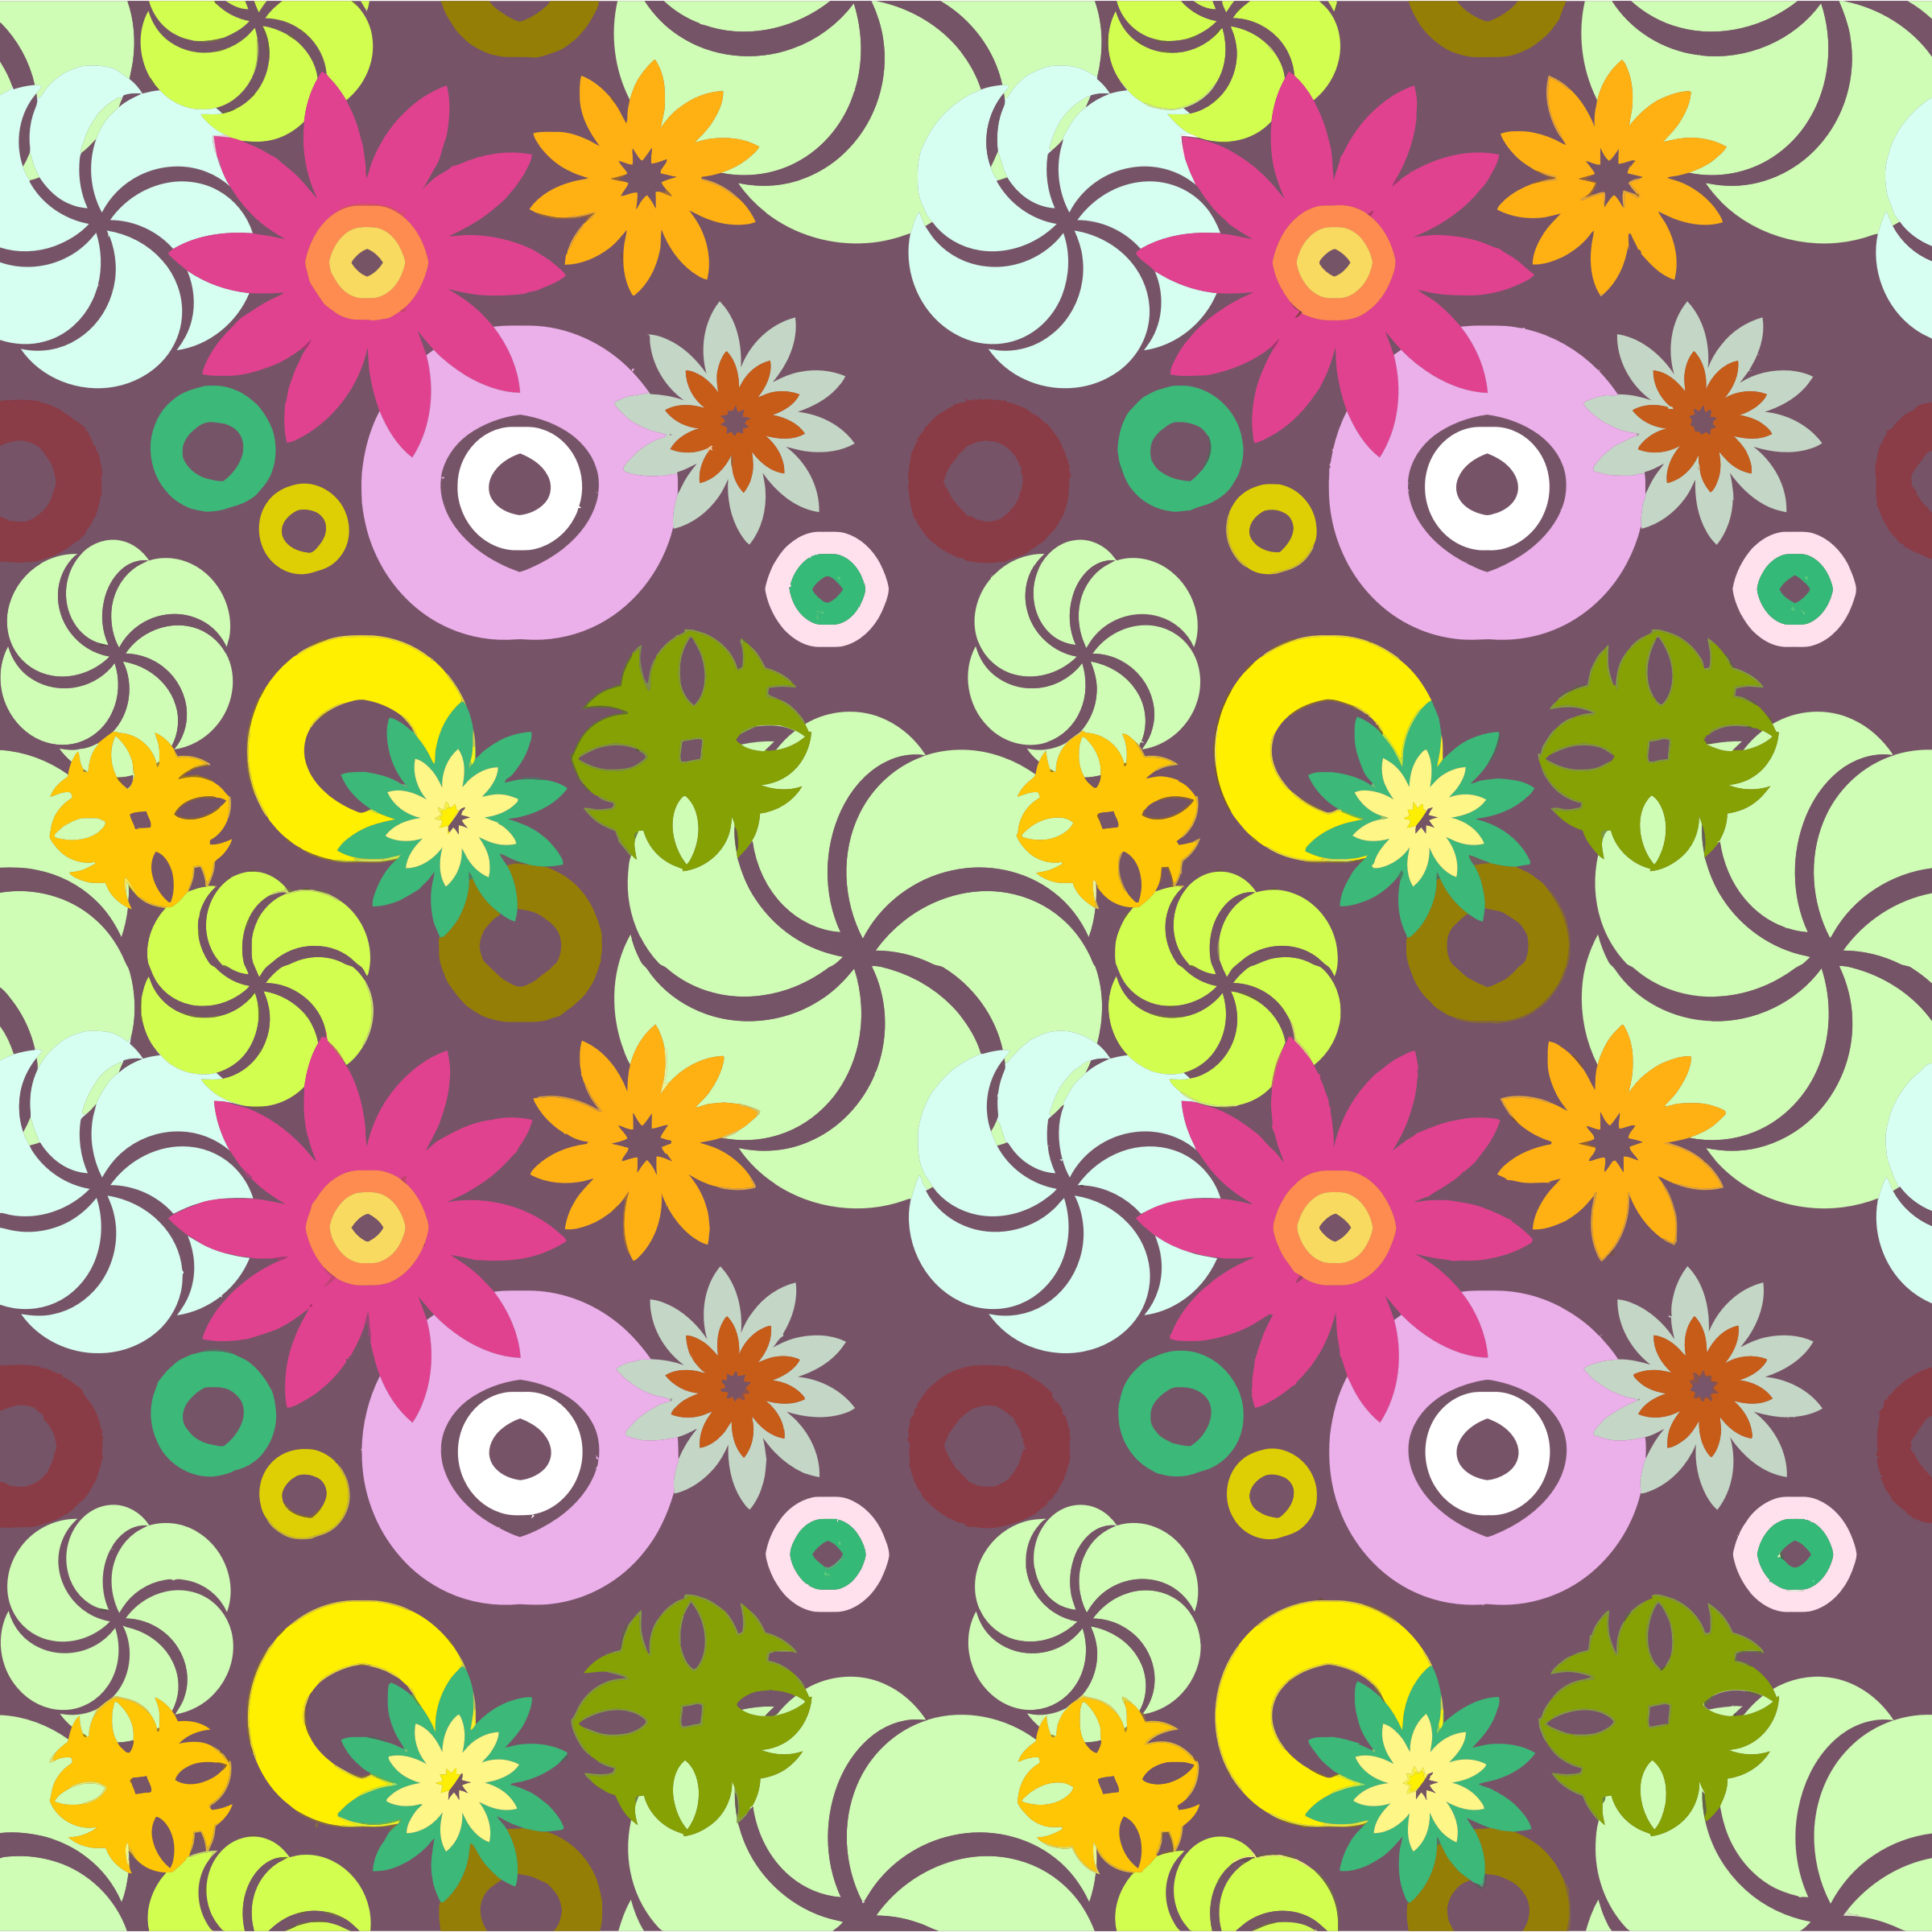 Floral Seamless Pattern 6 by GDJ